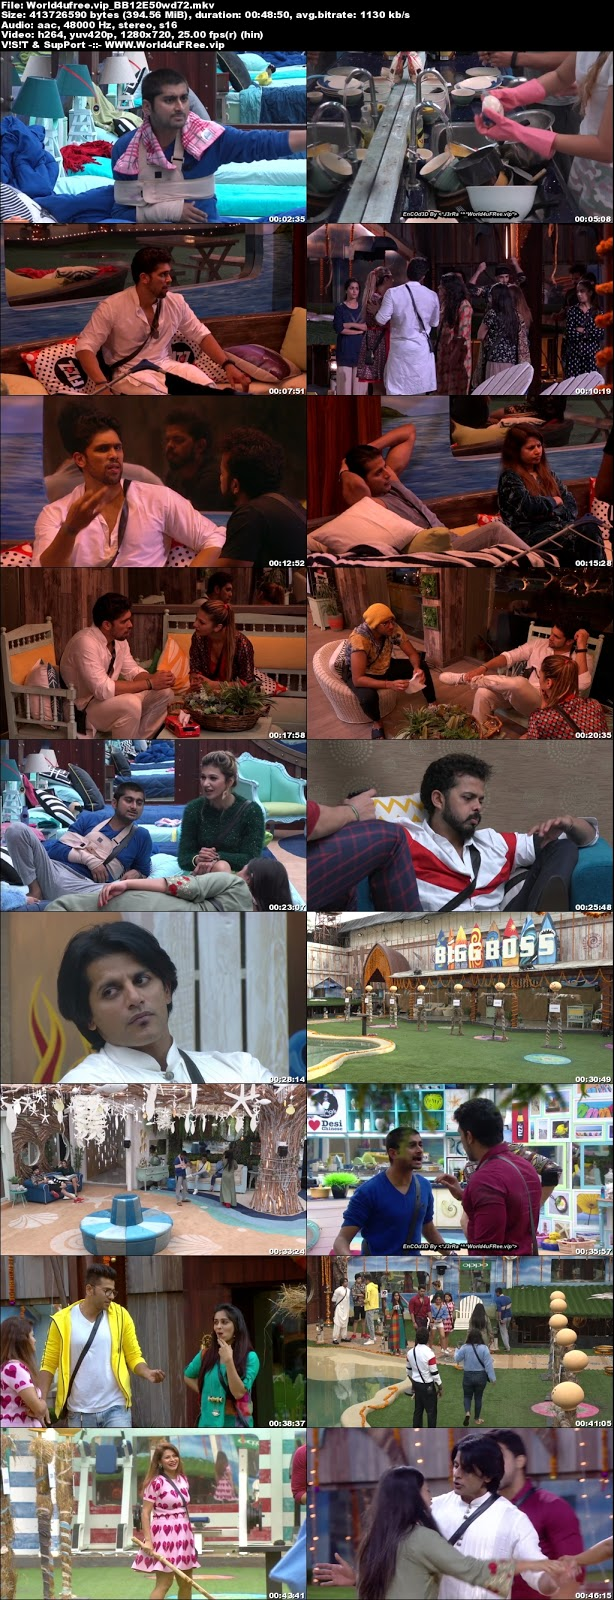 Bigg Boss 12 Episode 50 05 November 2018 720p WEBRip 400Mb x264 world4ufree.vip tv show Episode 50 05 november 2018 world4ufree.vip 300mb 250mb 300mb compressed small size free download or watch online at world4ufree.vip